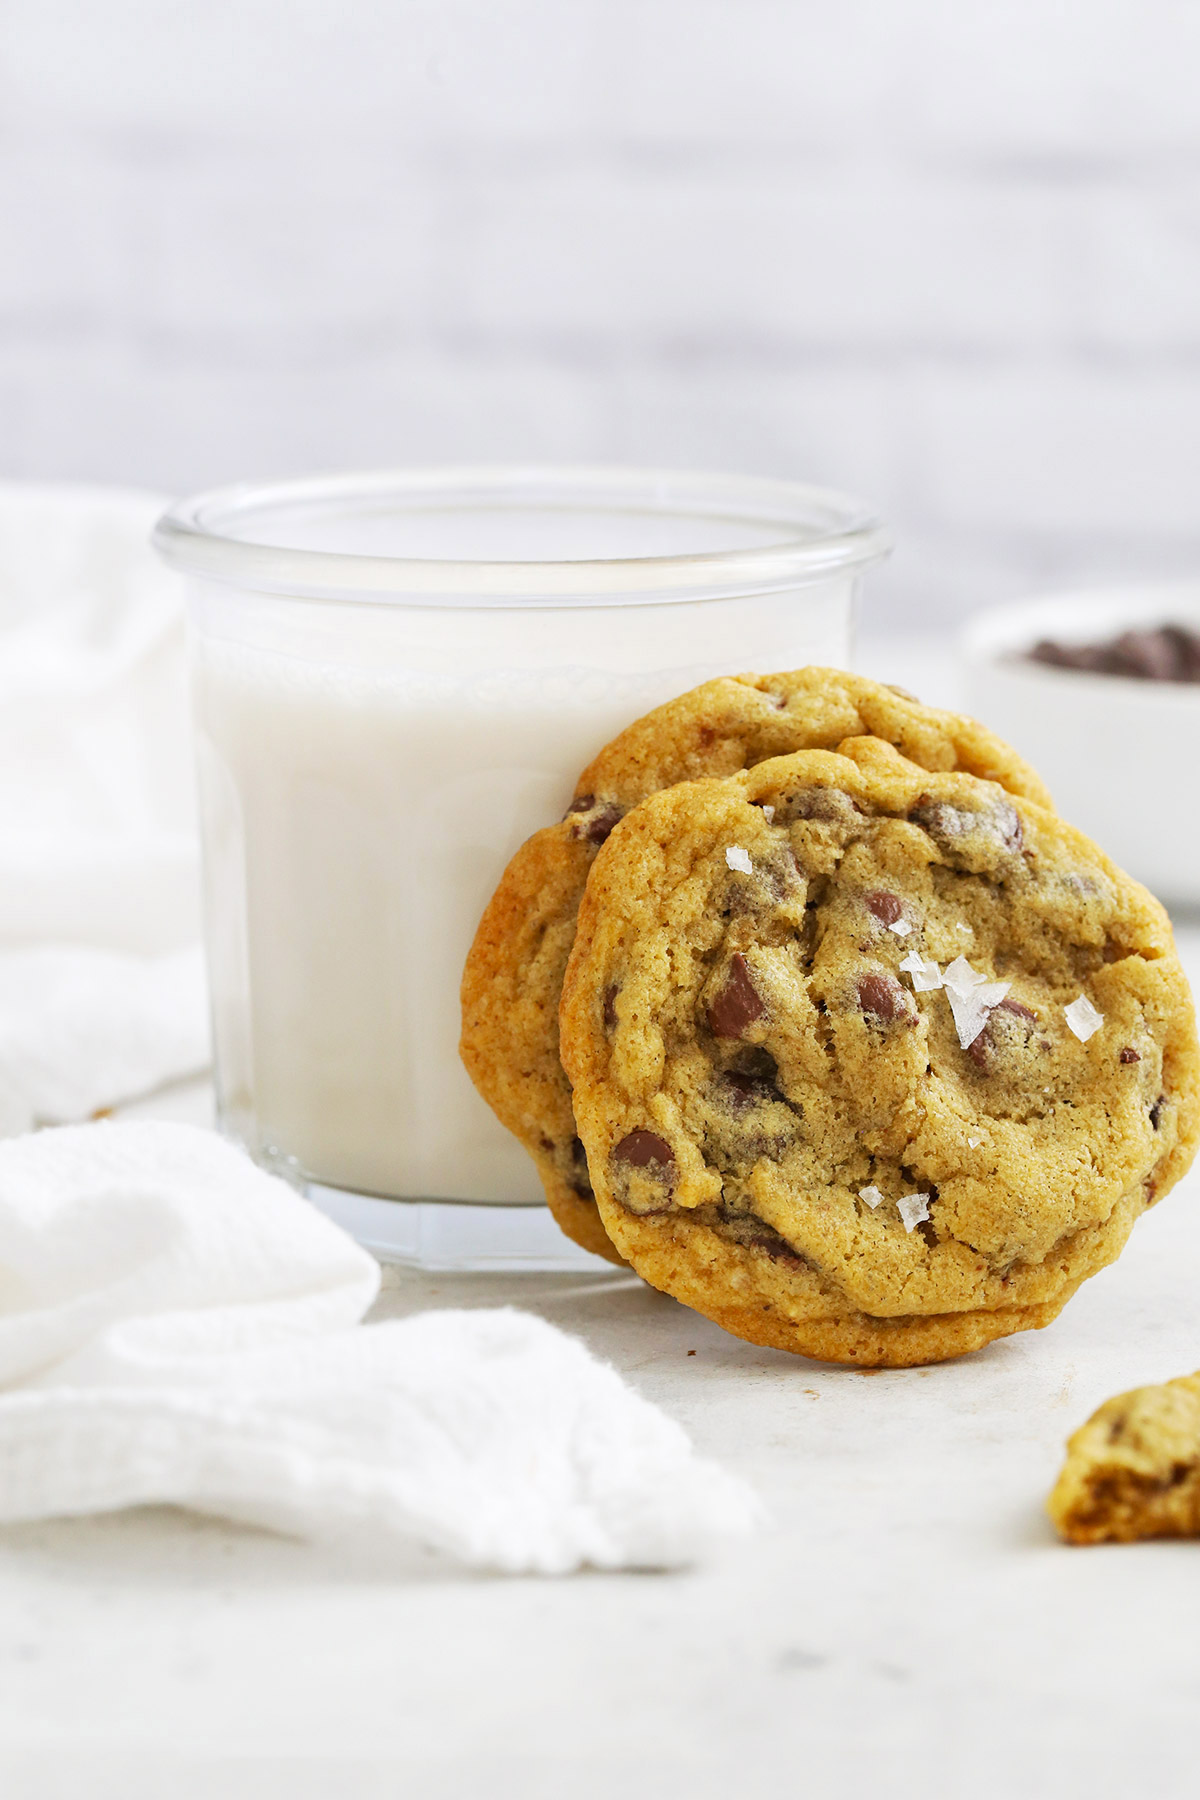 Gluten-Free Chocolate Chip Cookies leaning against a glass of almond milk